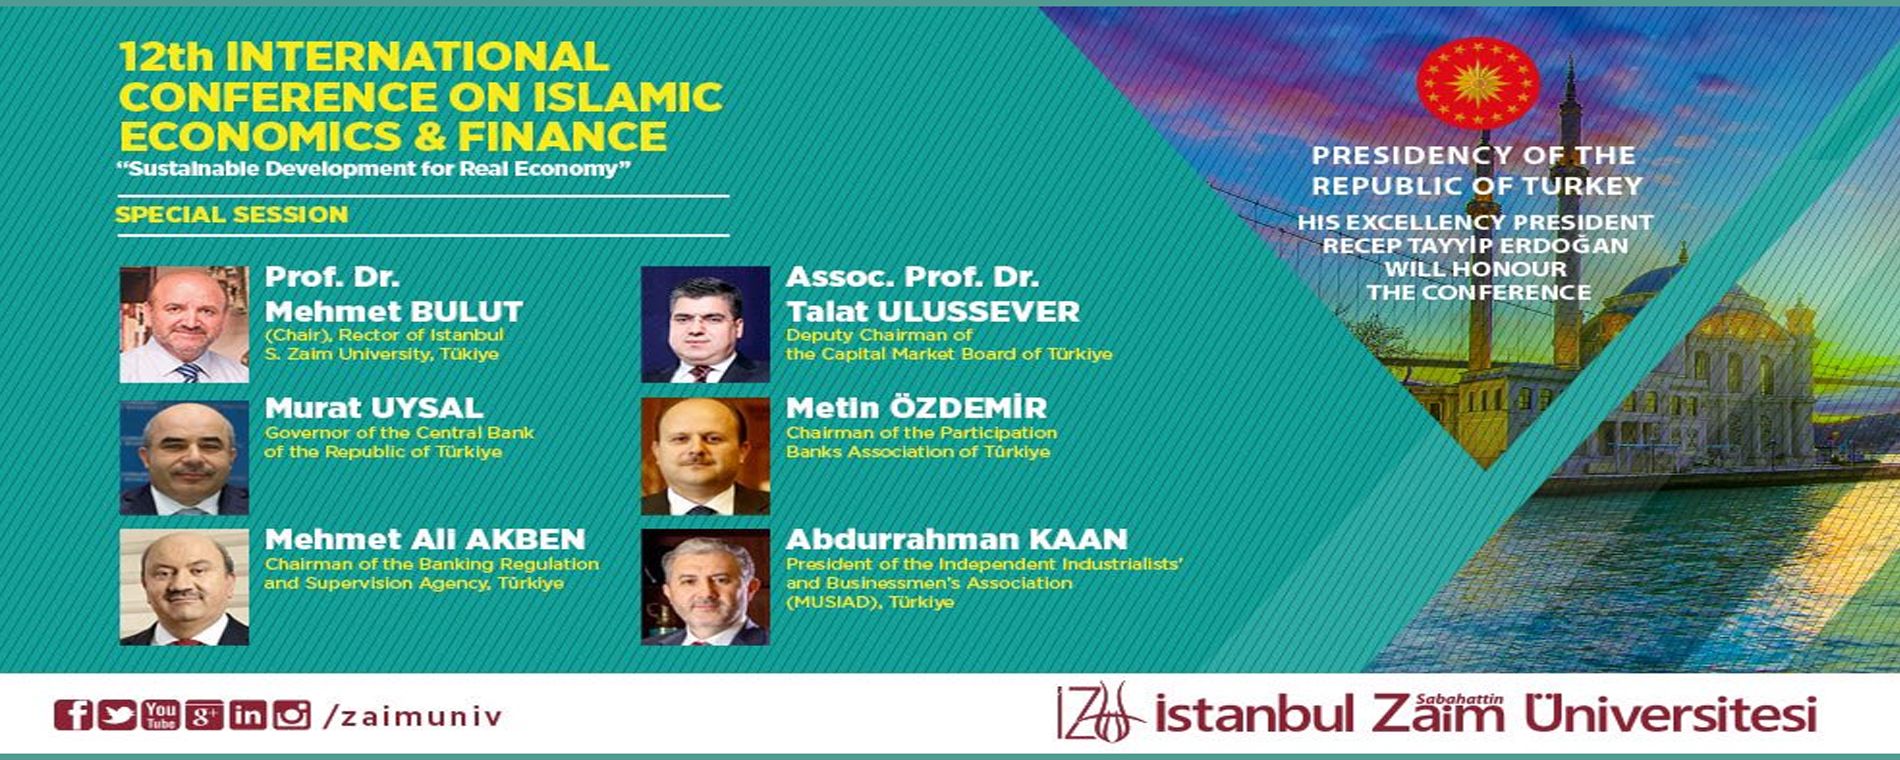 The 12th International Conference on Islamic Economics and Finance